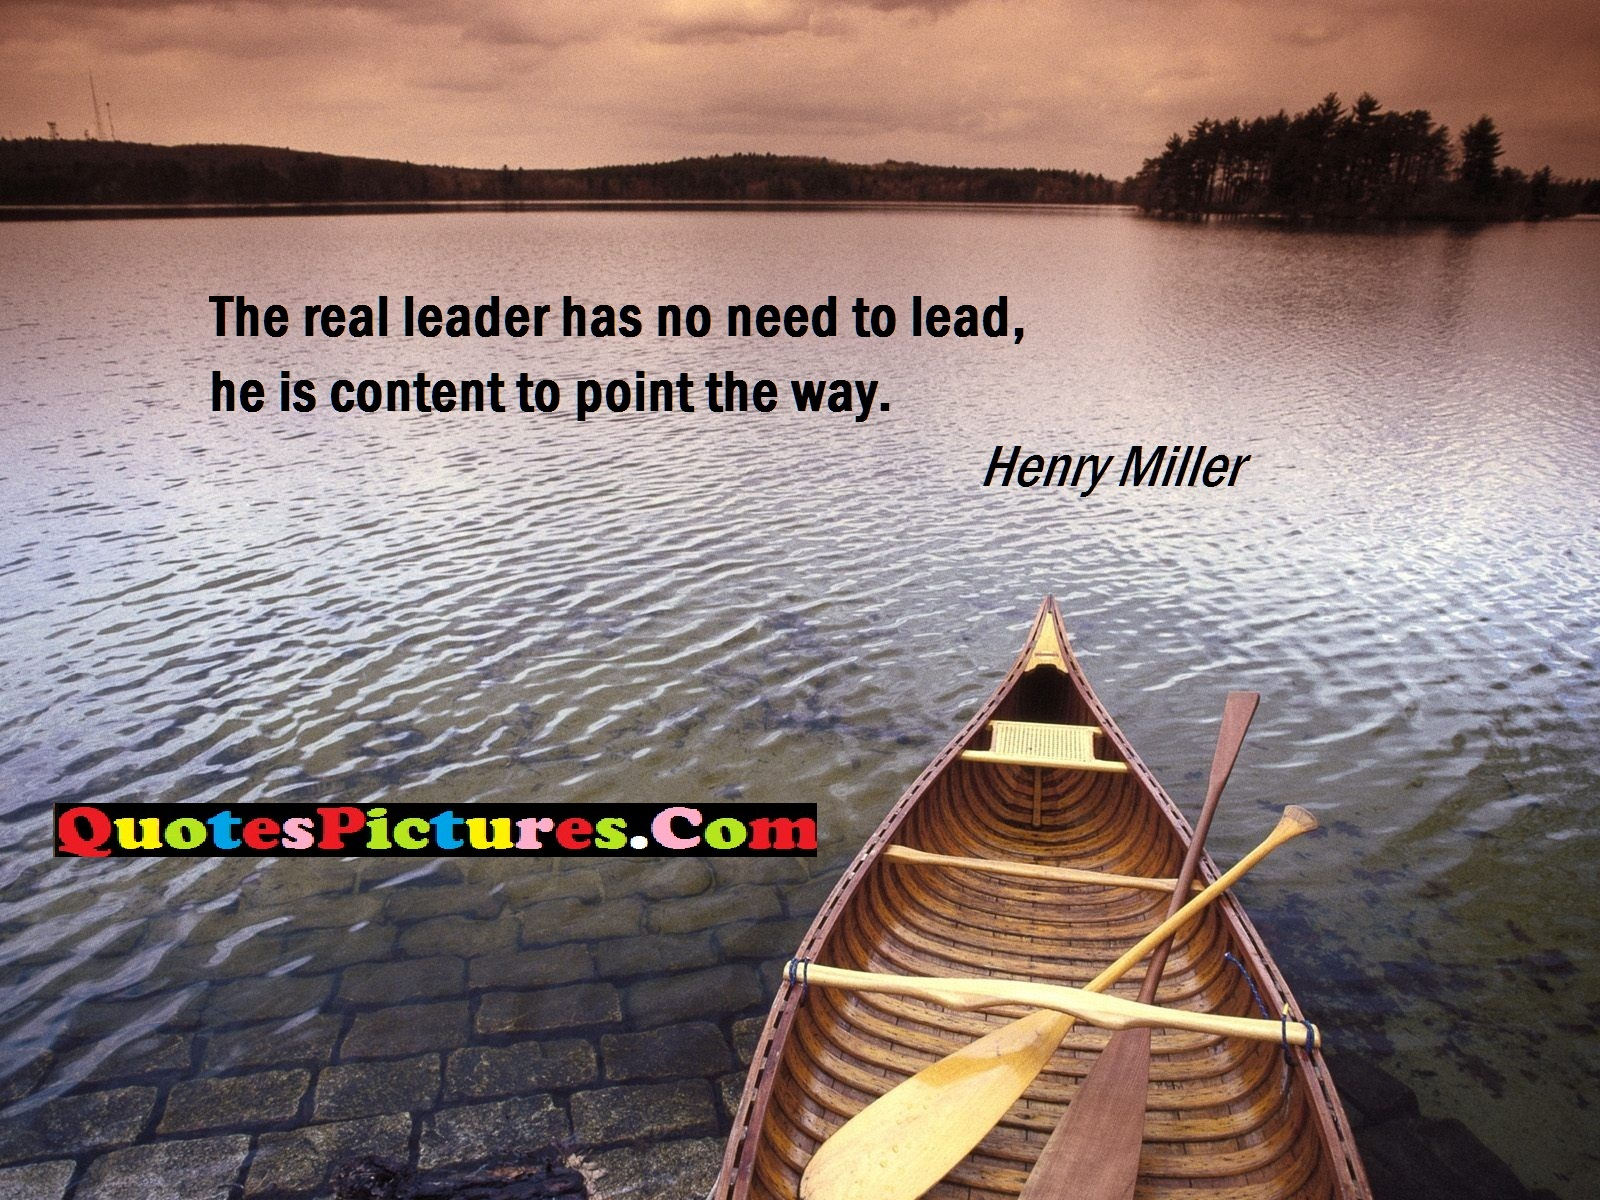 Leadership Quote - The Real Leader Has No Need To Lead, He Is Content To Point The Way. - Henry Miller